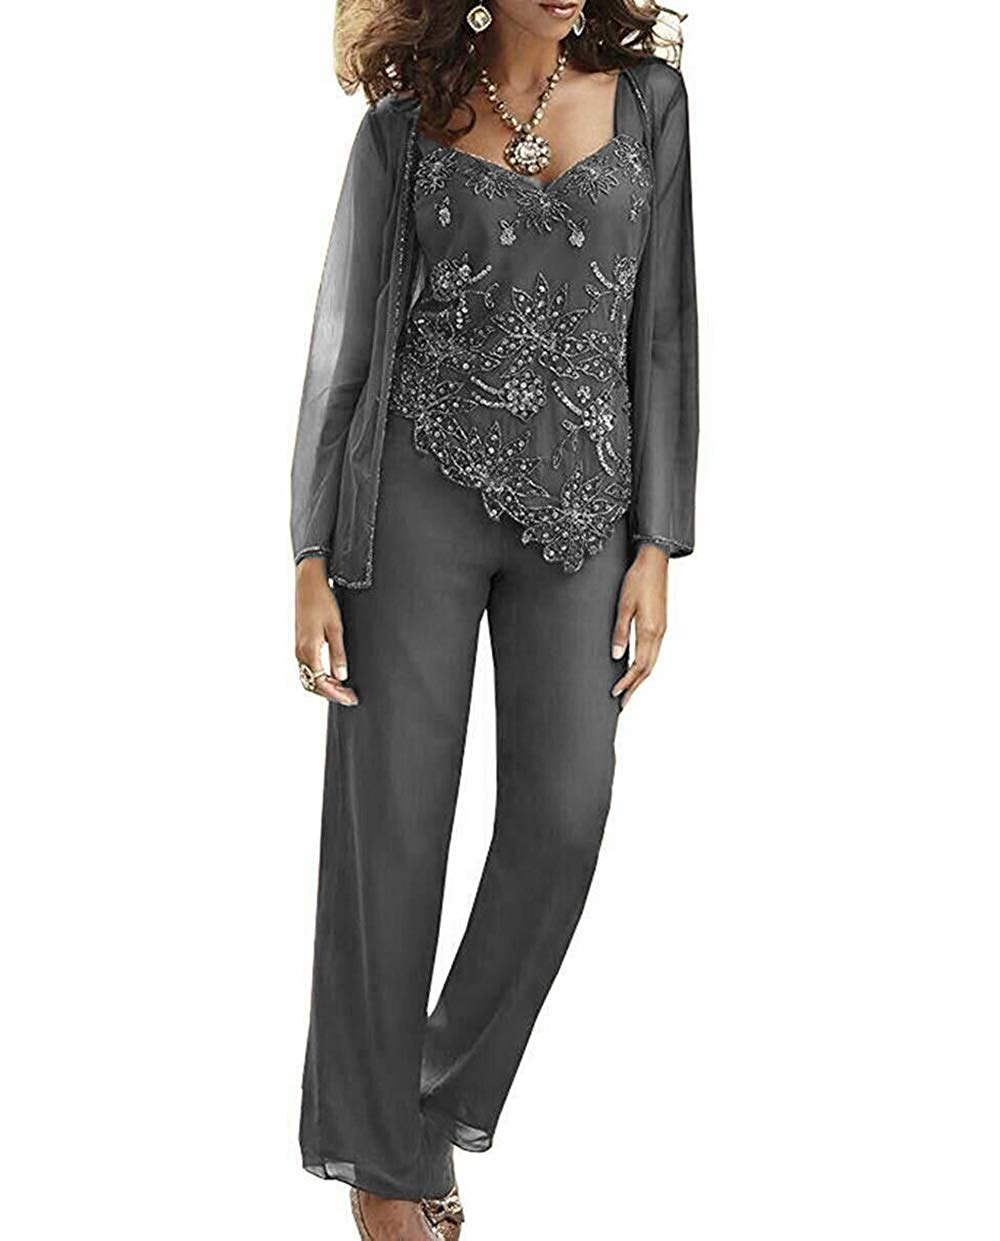 Womens 3 Pieces Elegant Sequins Chiffon Mother of Bride Dress Pant Suits with Jacket Outfit for Wedding